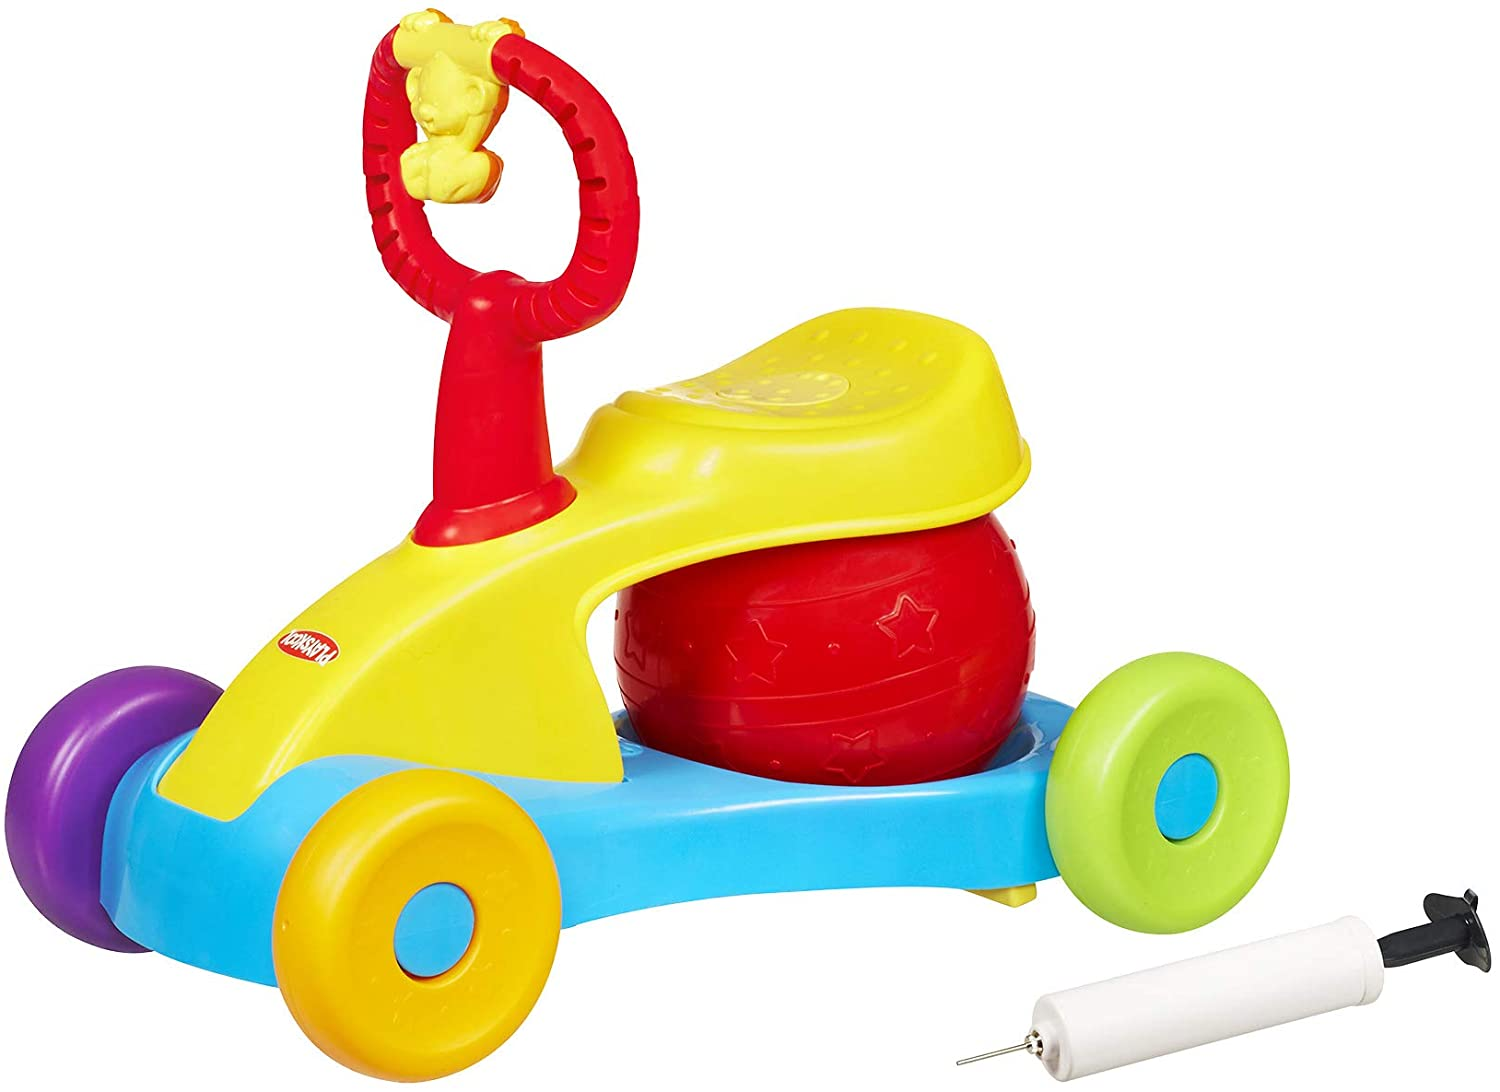 Playskool Bounce and Ride Active Toy Ride-On for Toddlers 12 Months and Up with Stationary Mode, Music, and Sounds (Amazon Exclusive)